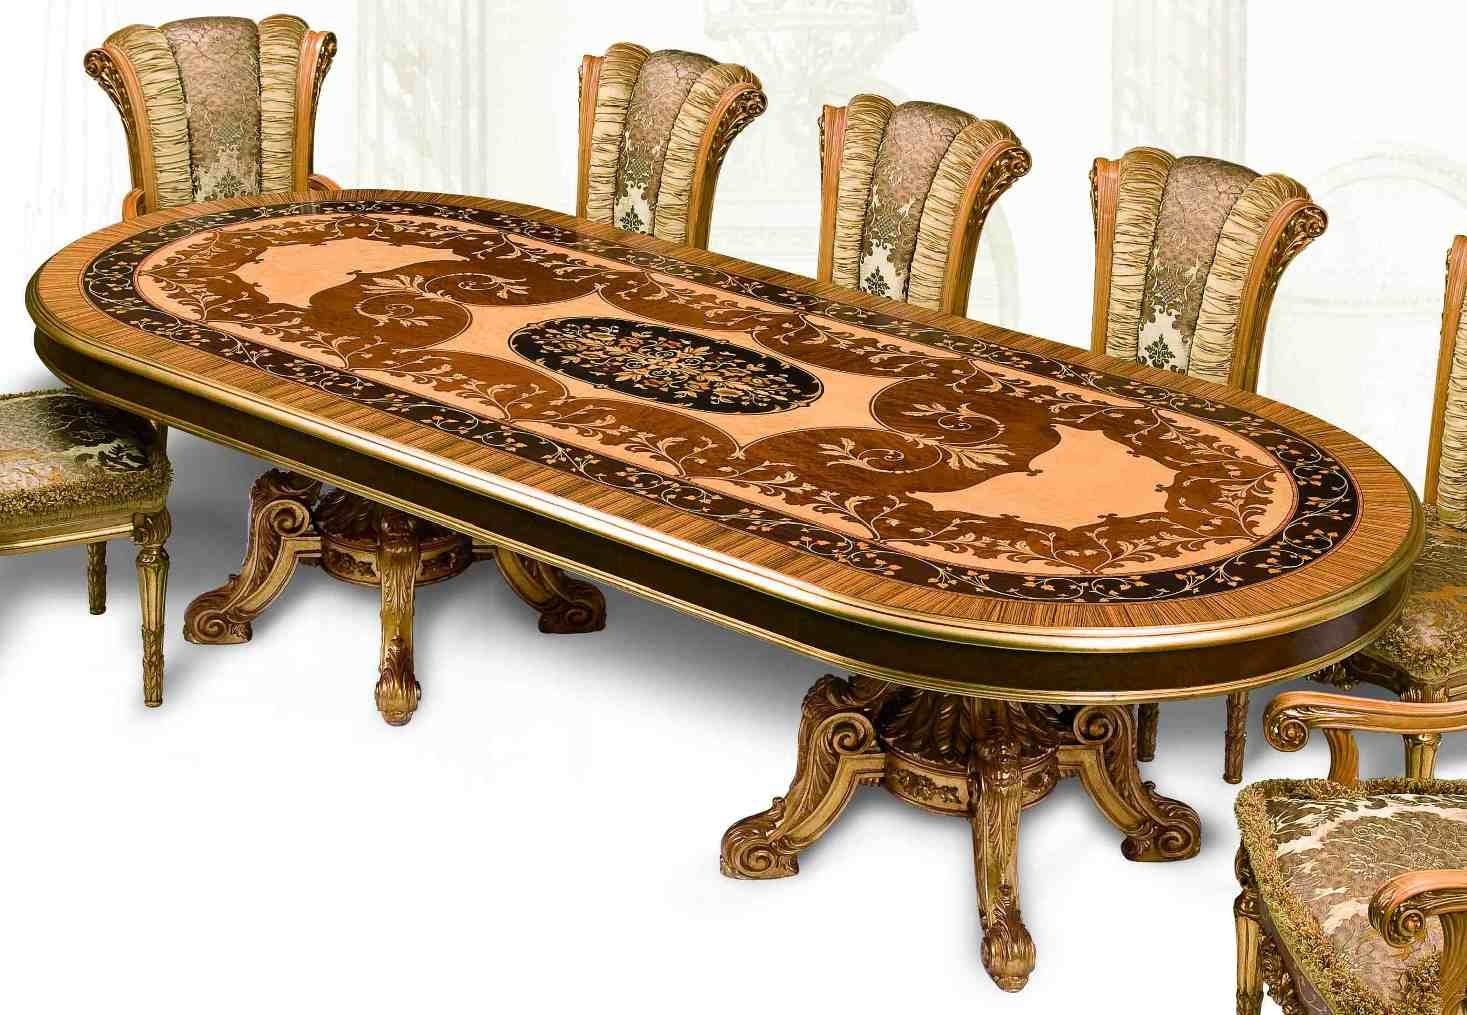 11 luxury dining furniture exquisite empire style dining set for Com furniture